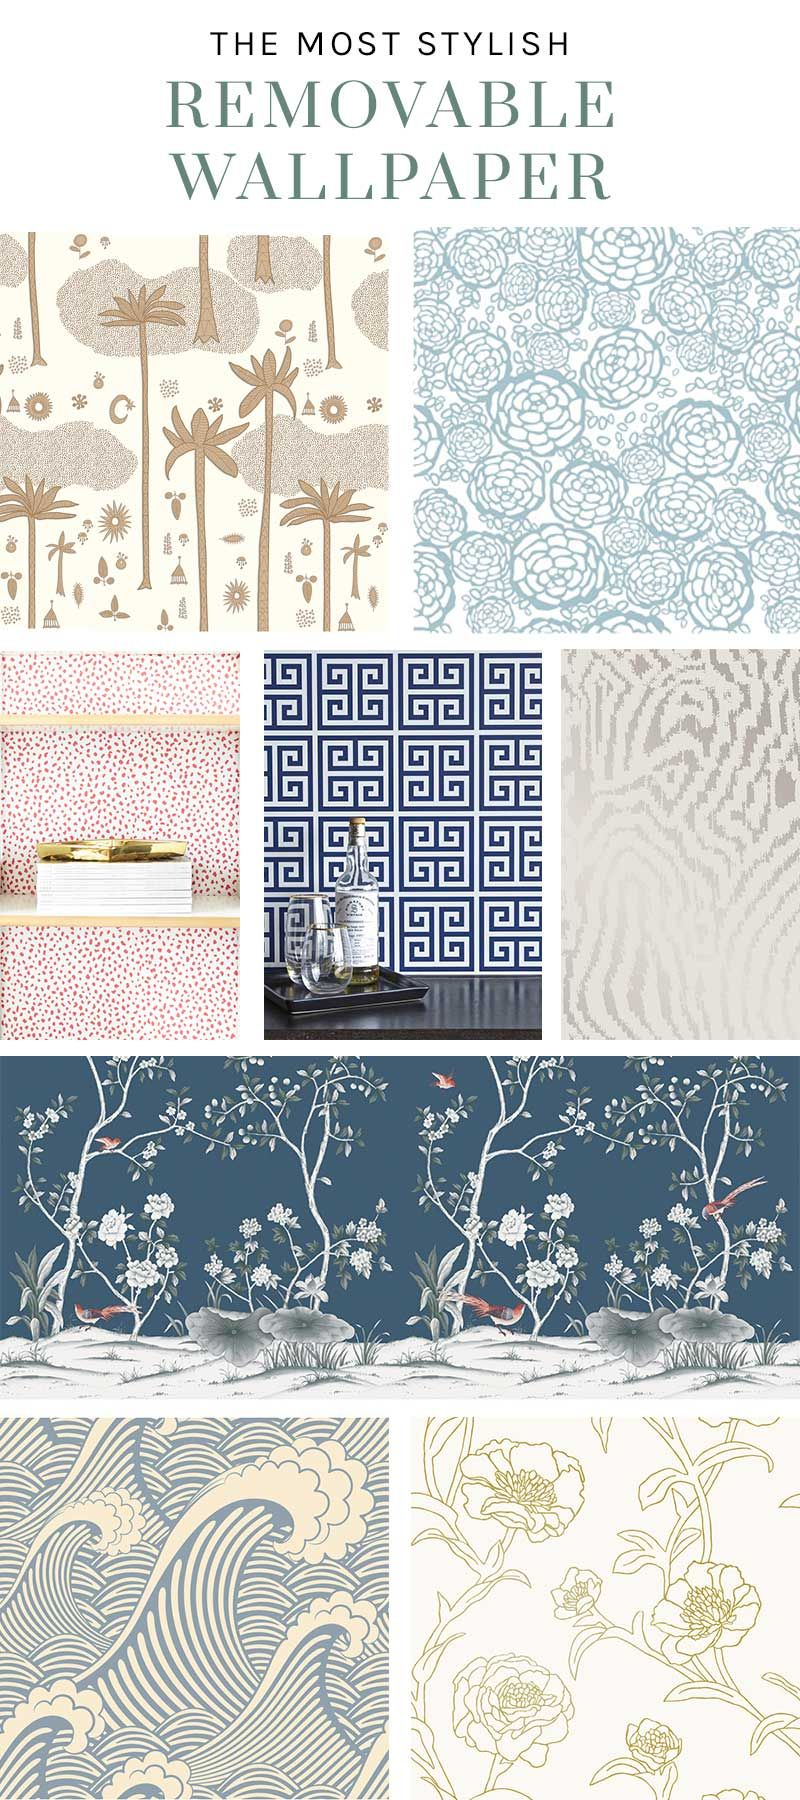 18 Stylish Removable Wallpaper Designs Thou Swell New Bathroom Wallpaper Removable Wallpaper Wallpaper Accent Wall